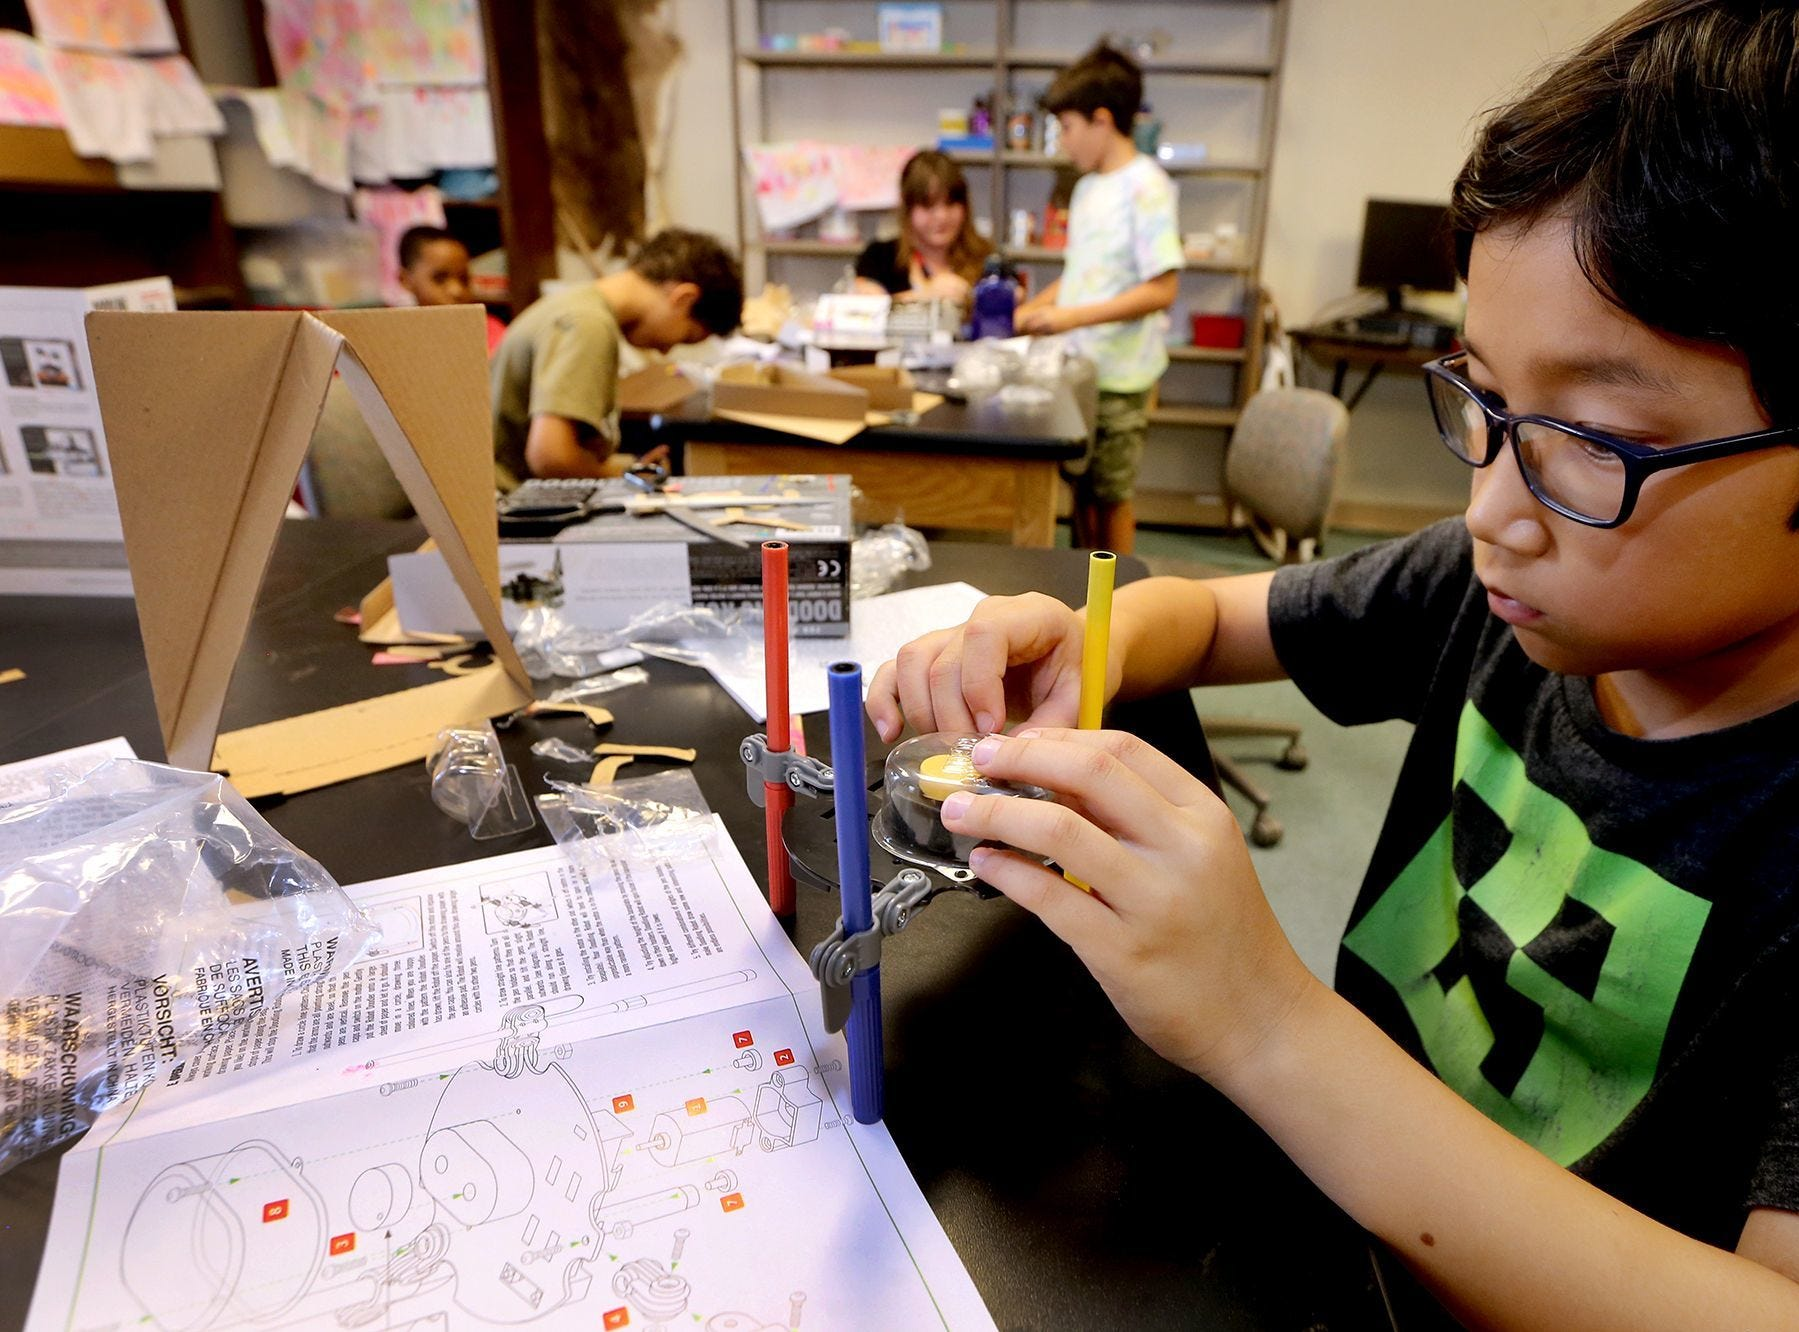 Serik Bilbro builds a model at Camp STEM at MTSU. Art can take many forms, including science.